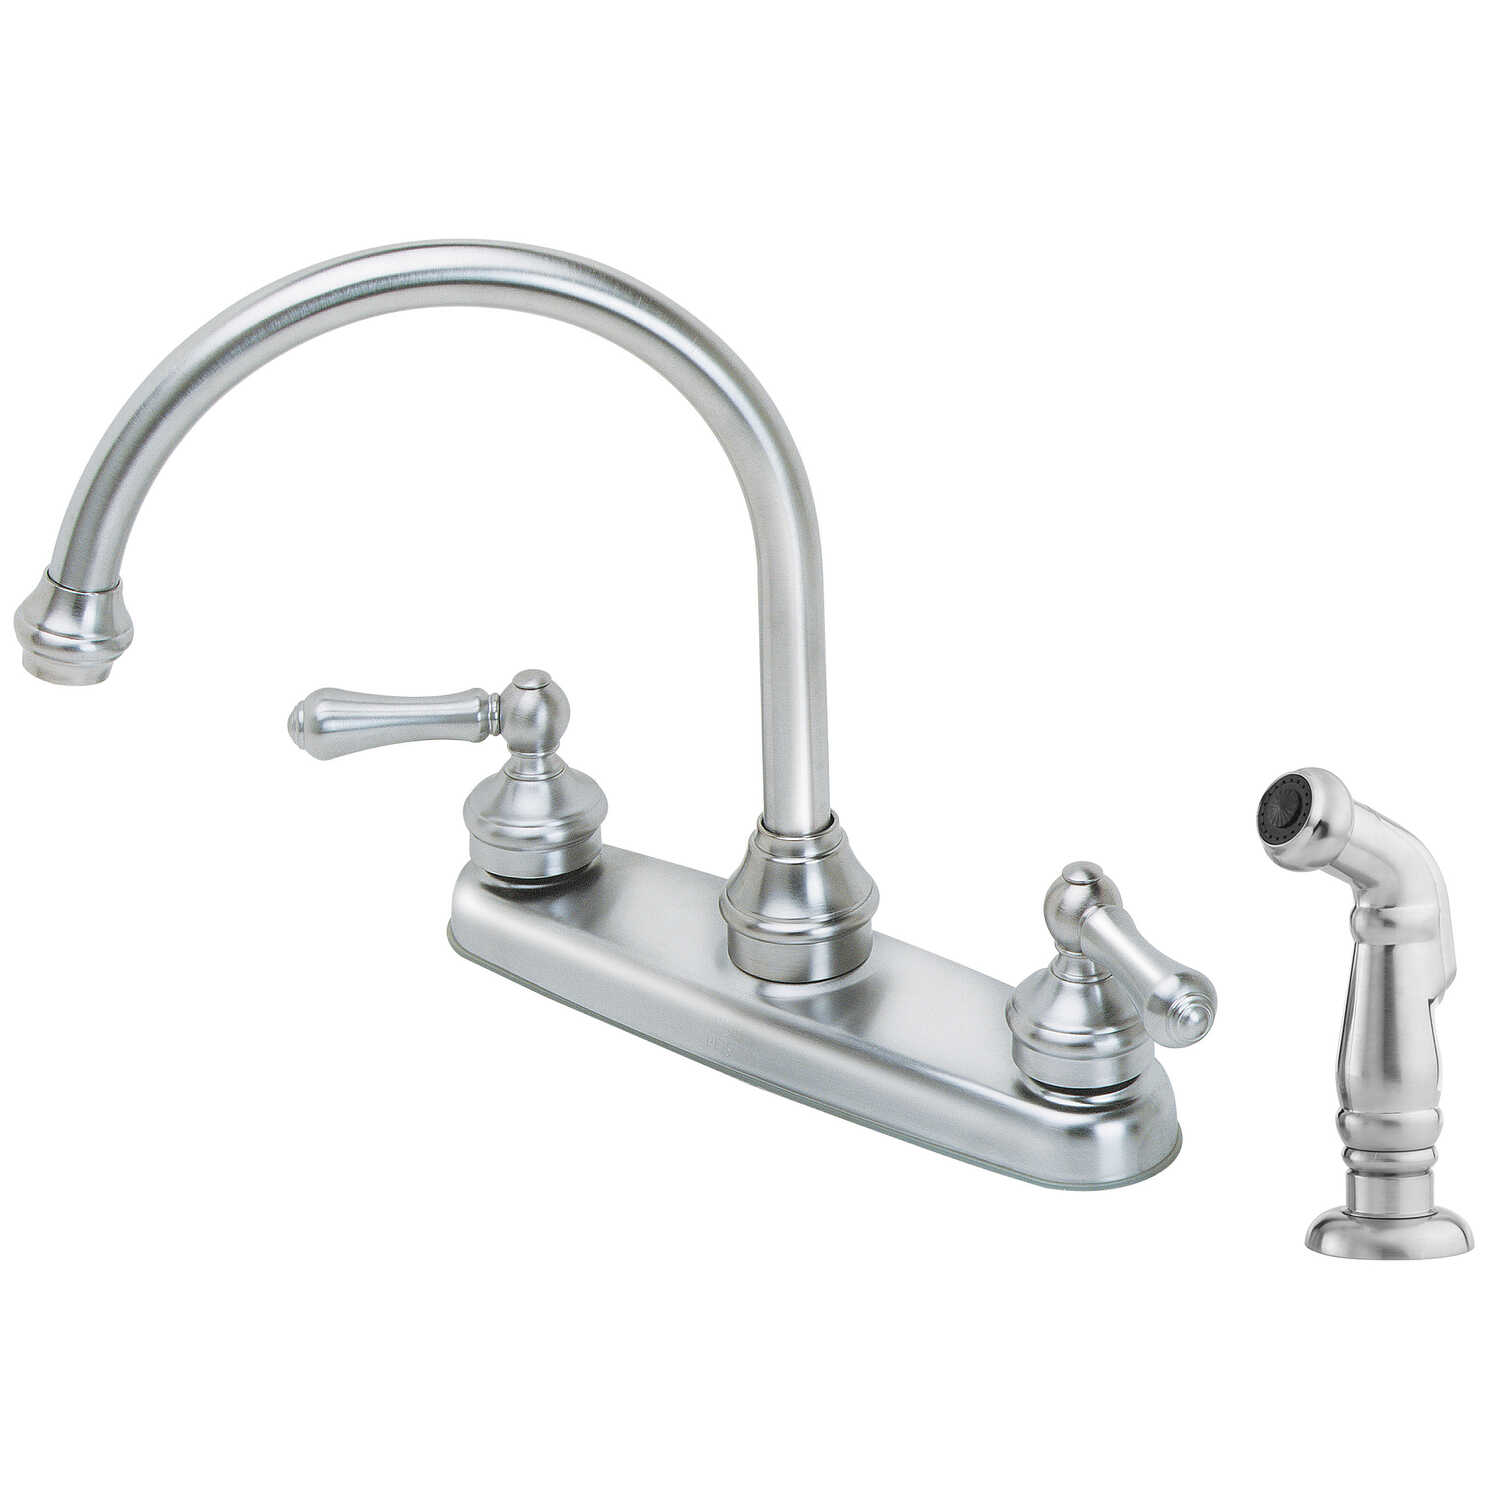 Pfister  Savannah  Two Handle  Stainless Steel  Kitchen Faucet  Side Sprayer Included